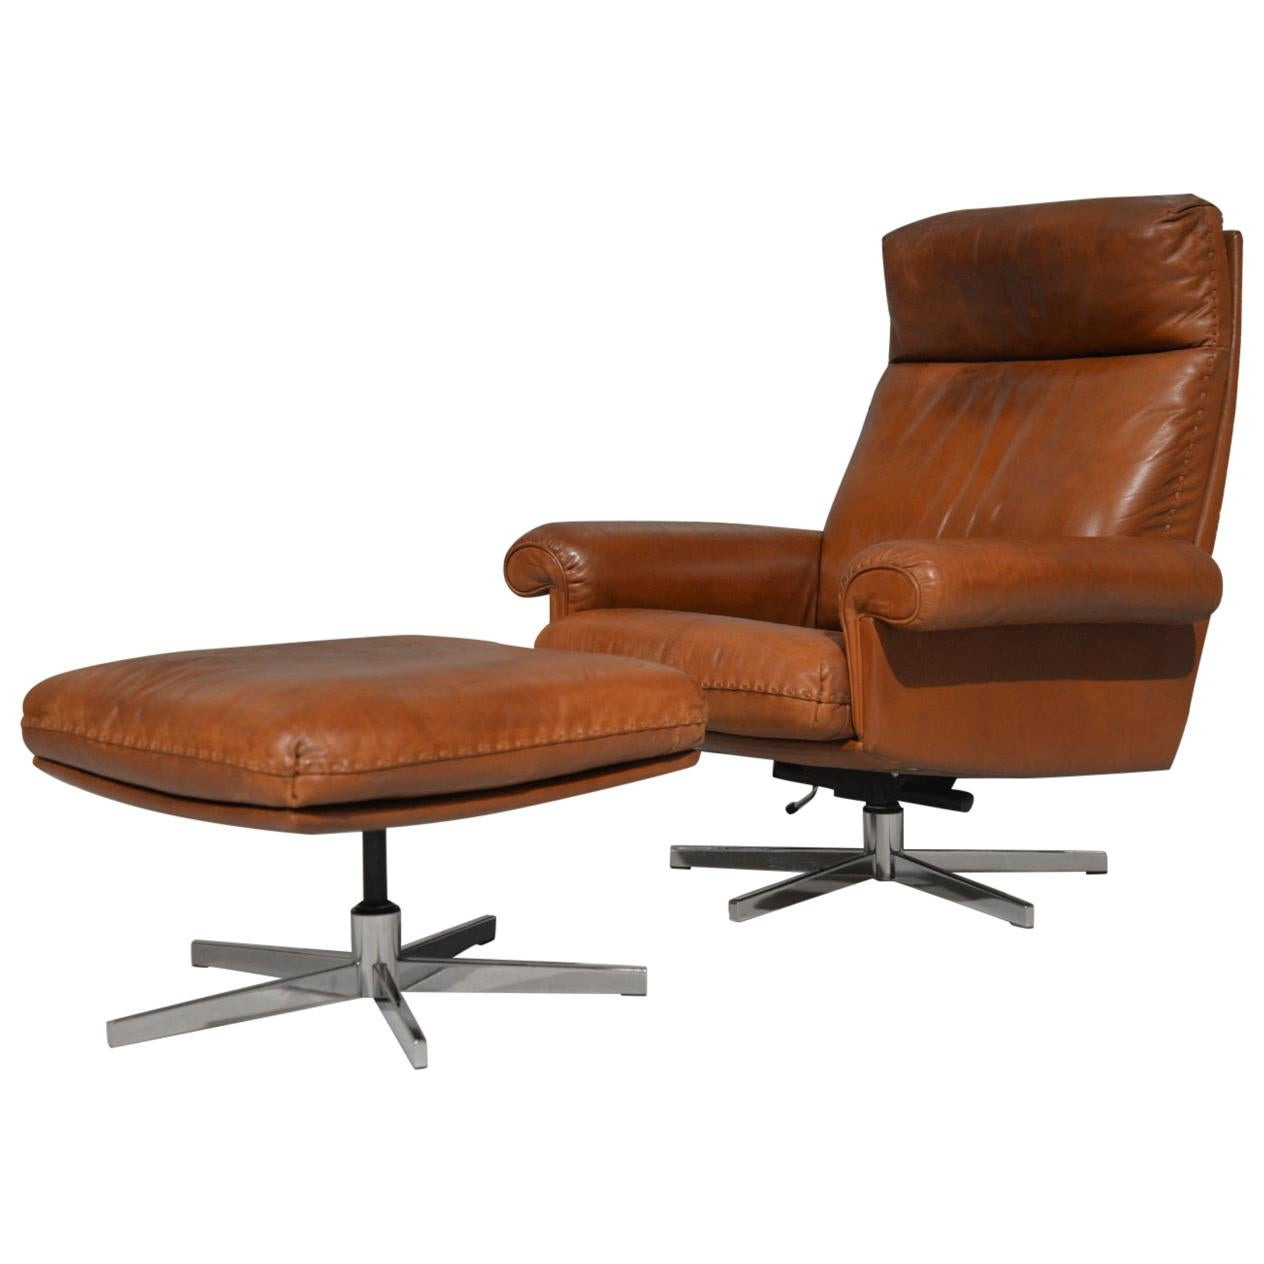 Vintage De Sede DS 31 High Back Leather Swivel Armchair with Ottoman, 1970s